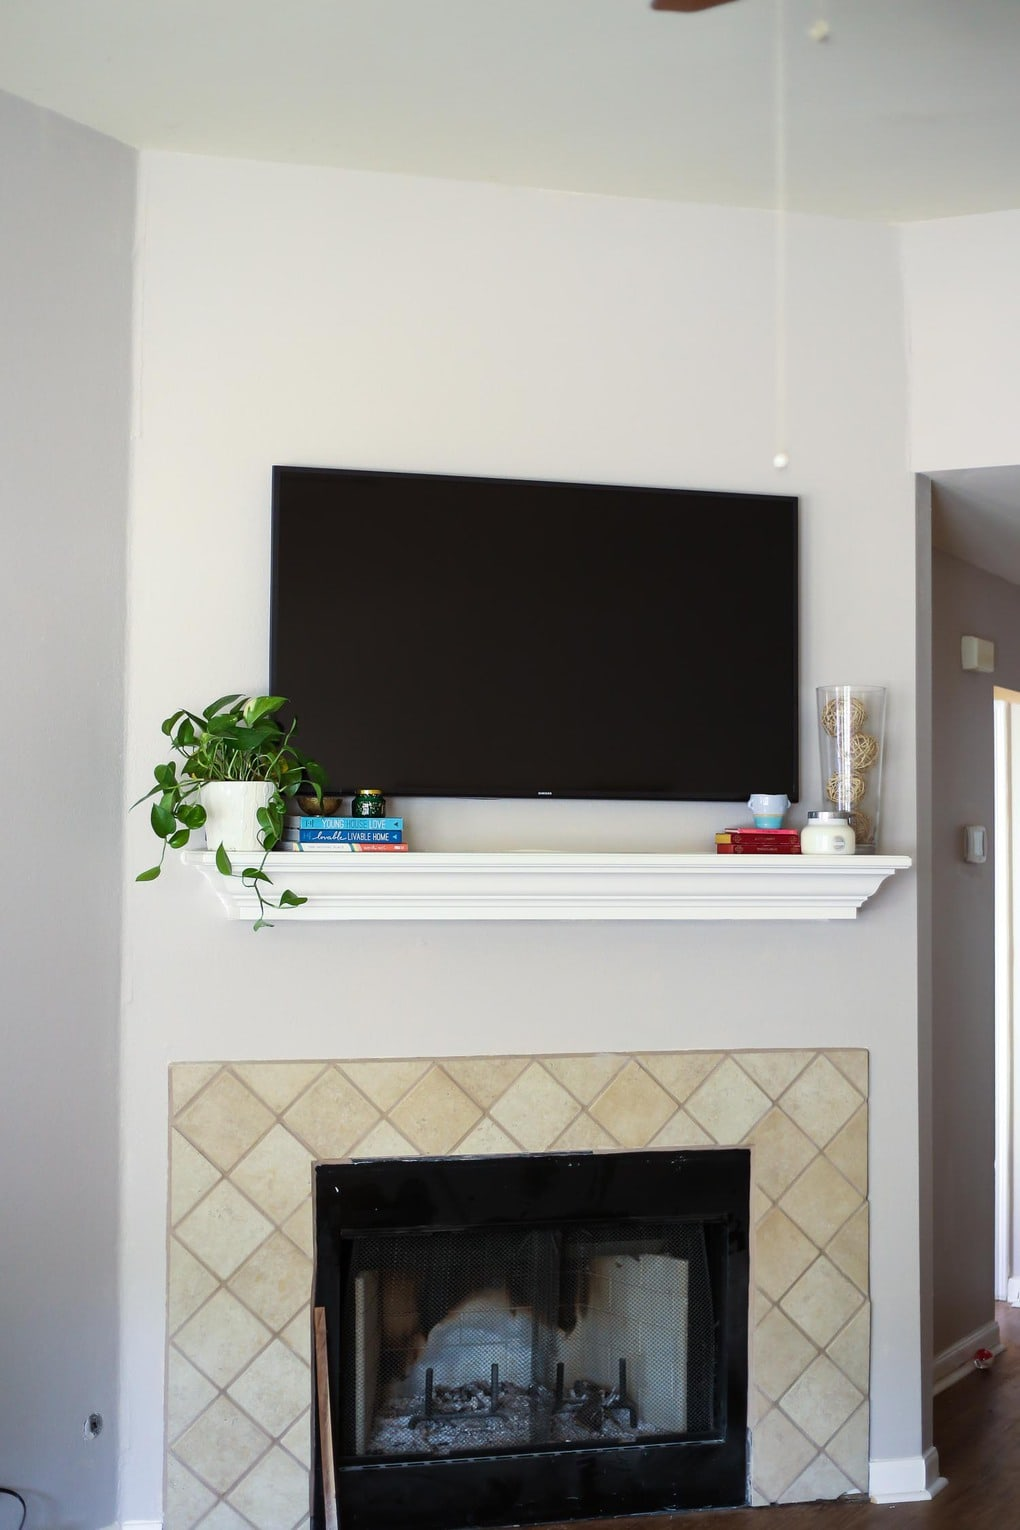 Tips for decorating a mantel when you have a television hanging above it - how to make the most of an awkward setup and make it beautiful!